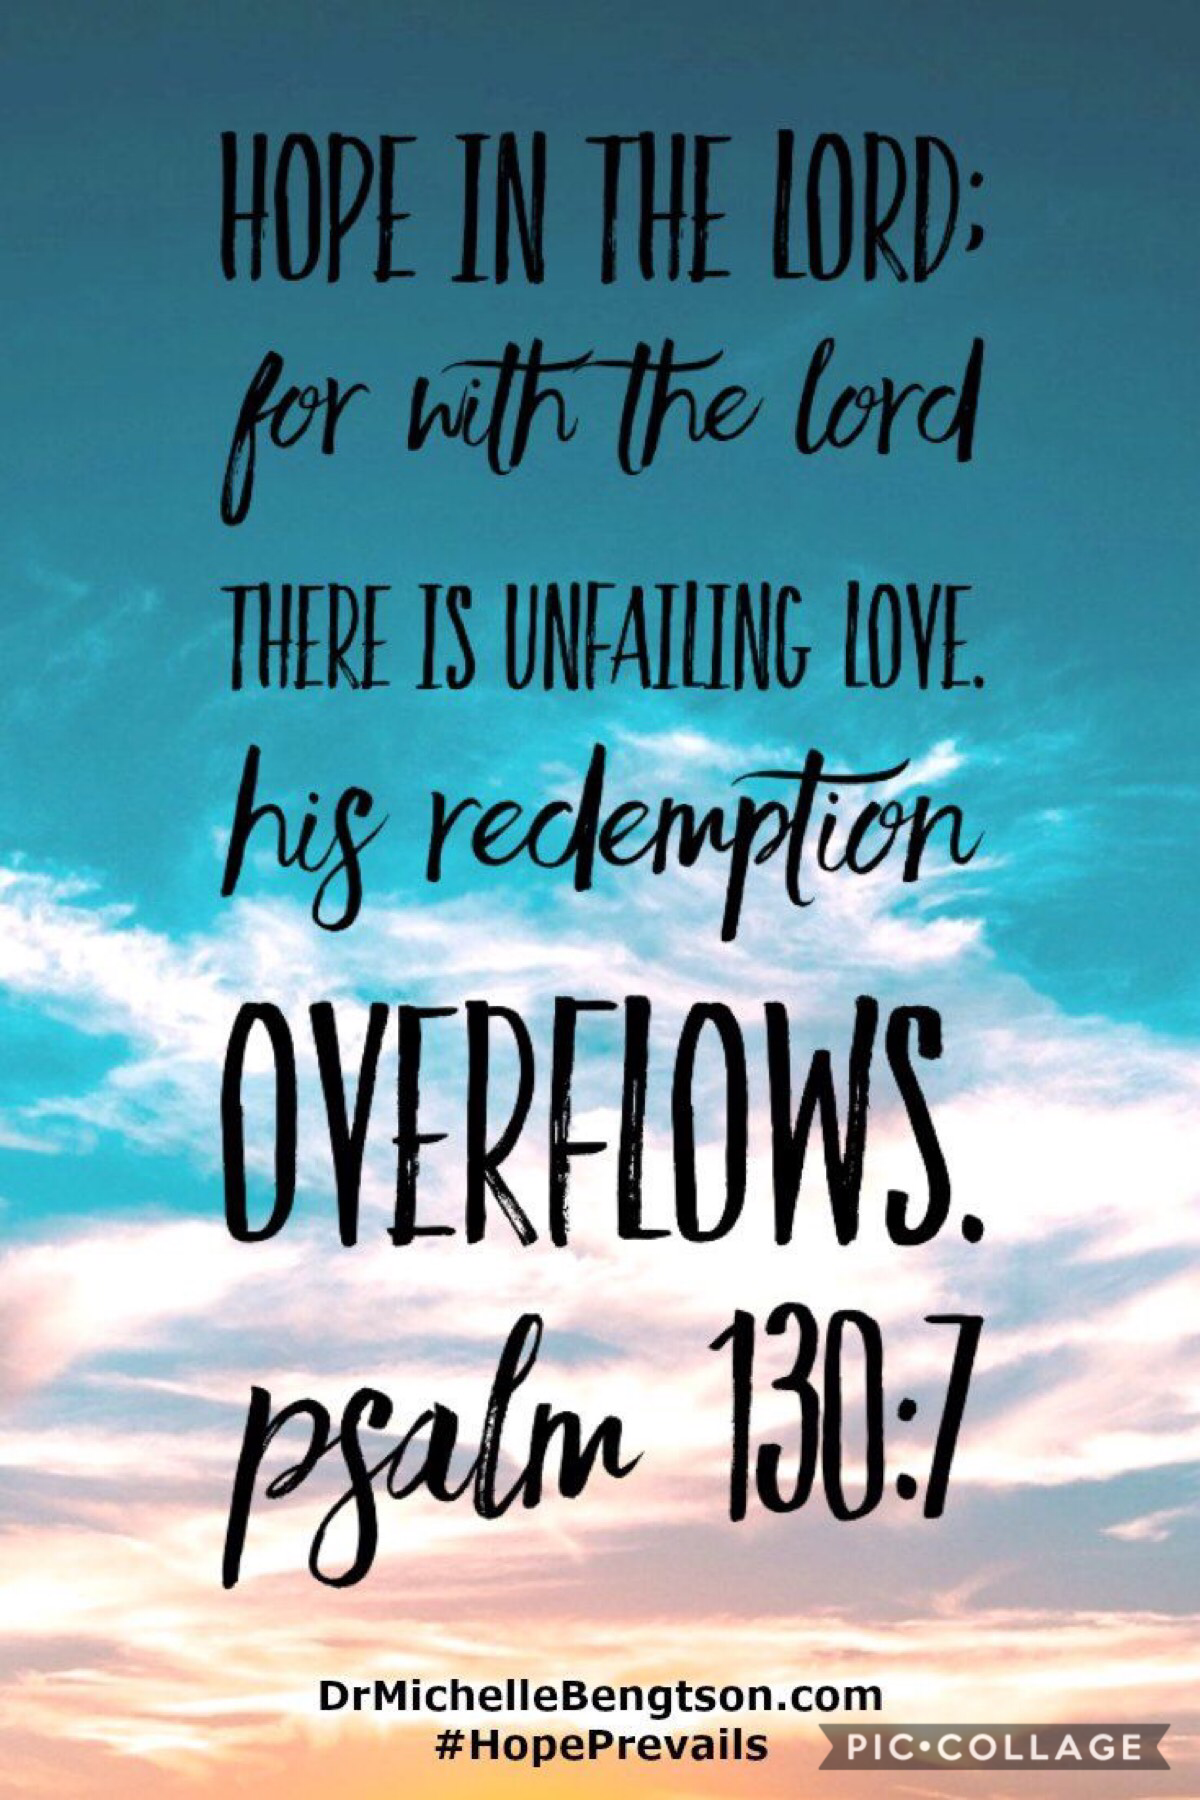 ❣️Tap❣️ Hey y'all, I'm back with my ✝️Bible Verse of the Week✝️ and I'm very sorry that I haven't been posting as much as I've used to. It's just because of school work and stuff, but I'm gonna try to post at least once a week! ILYSSSSM!!!